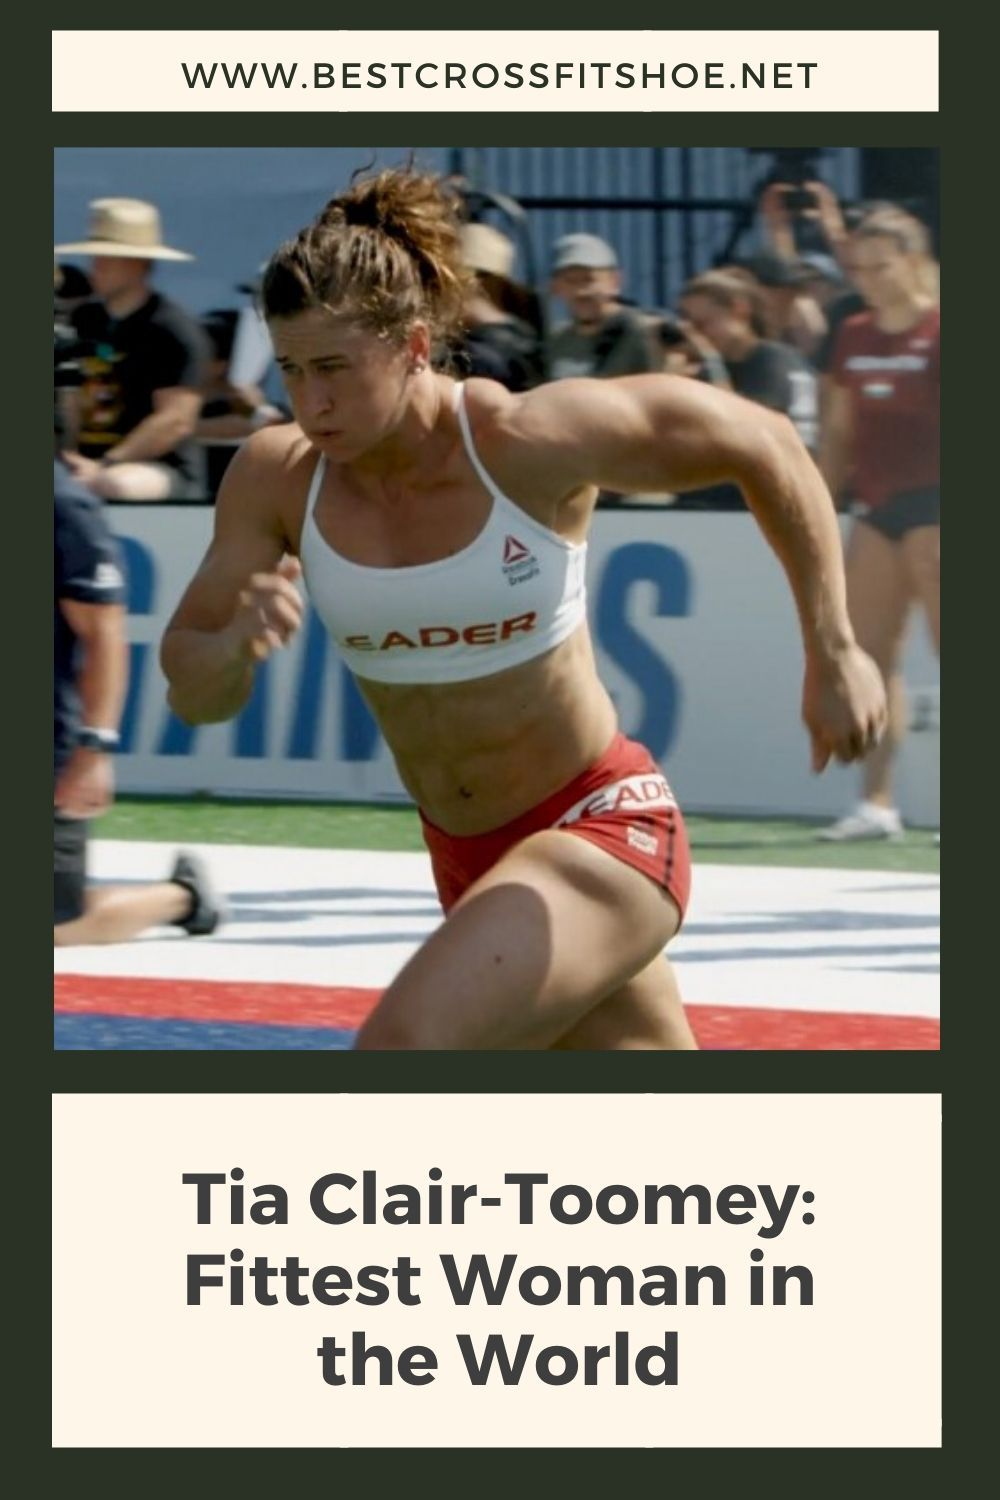 Tia Clair-Toomey is the reigning fittest woman in the world as decided at the CrossFit Games. Find o...